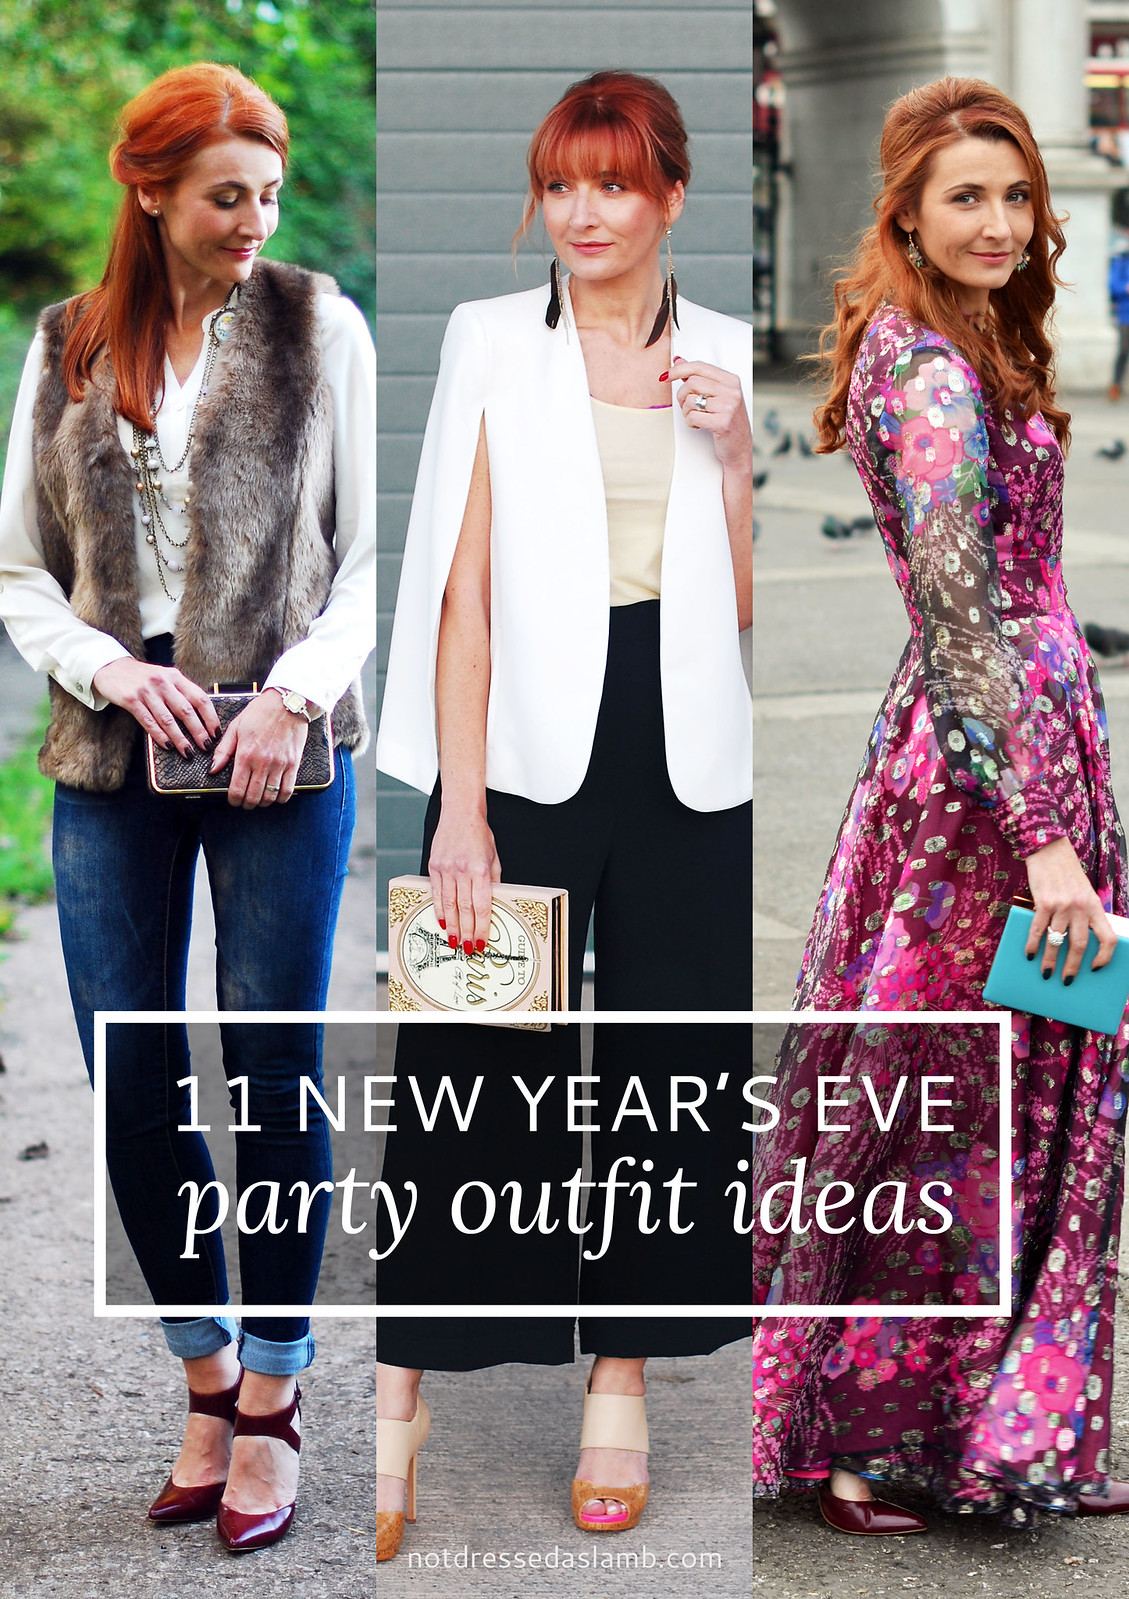 11 New Year's Eve Party Outfit Ideas For Over 40 Women | Not Dressed As Lamb